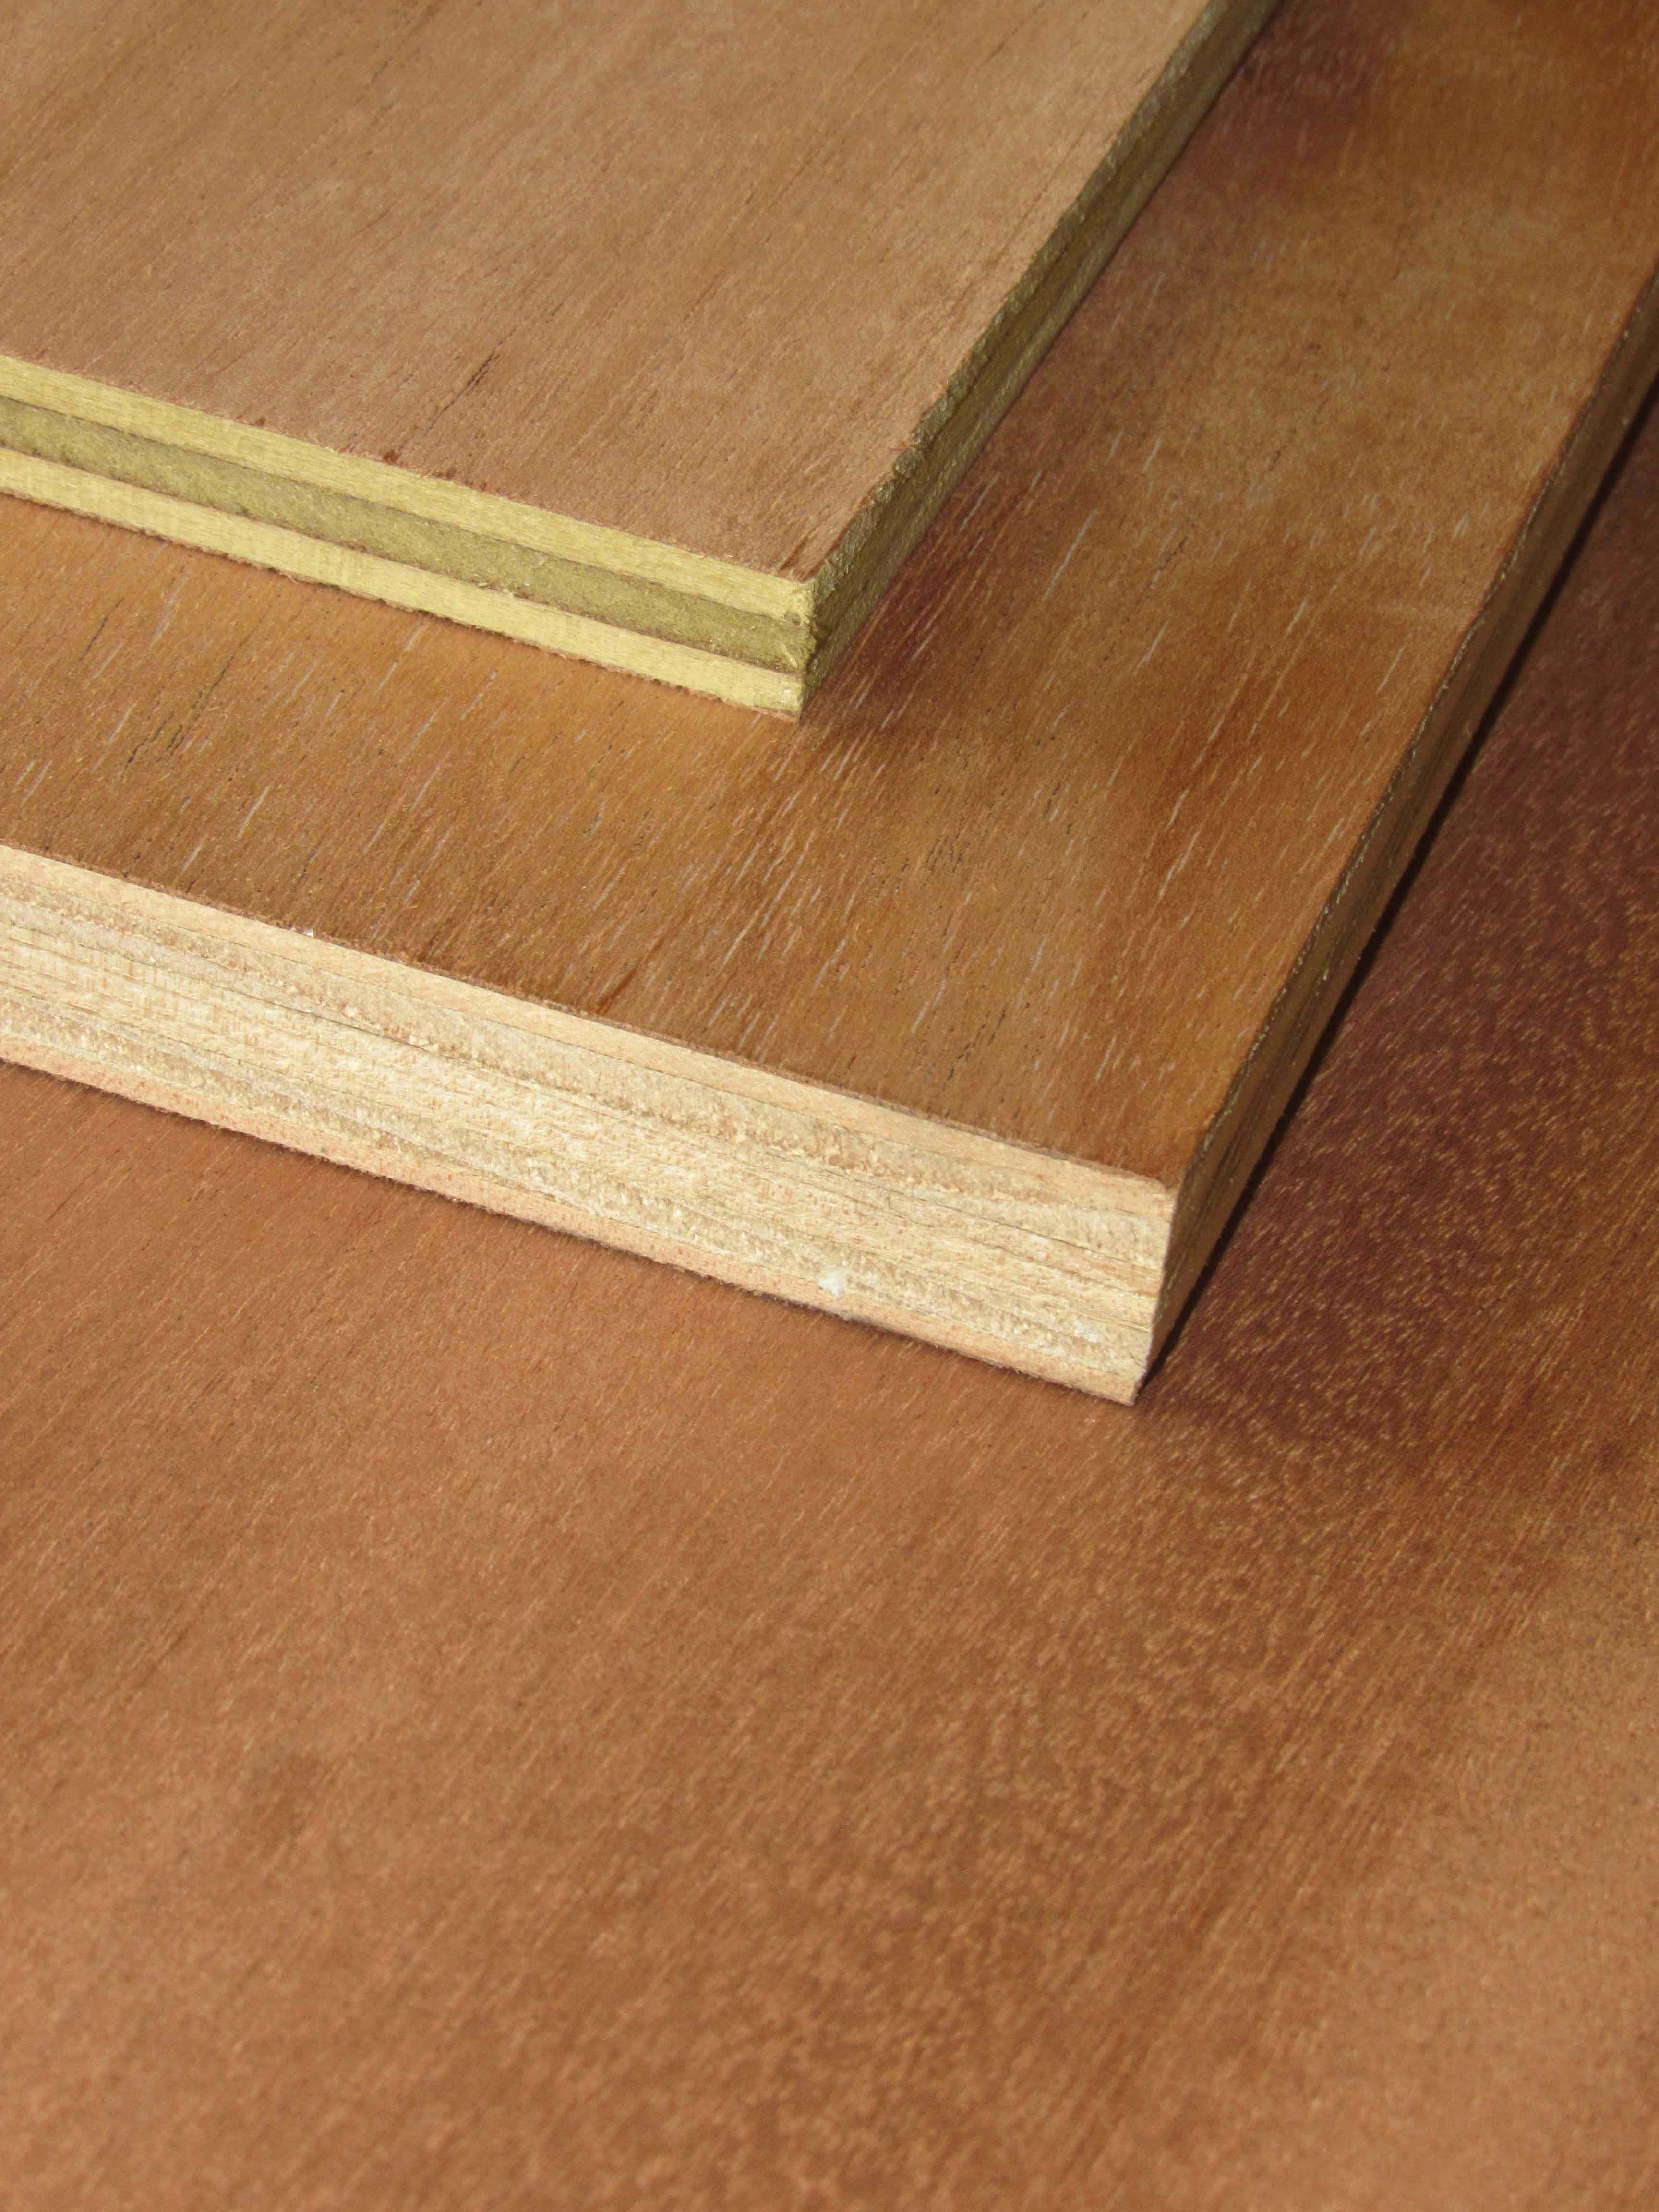 Plywood Archives - Capitol City Lumber